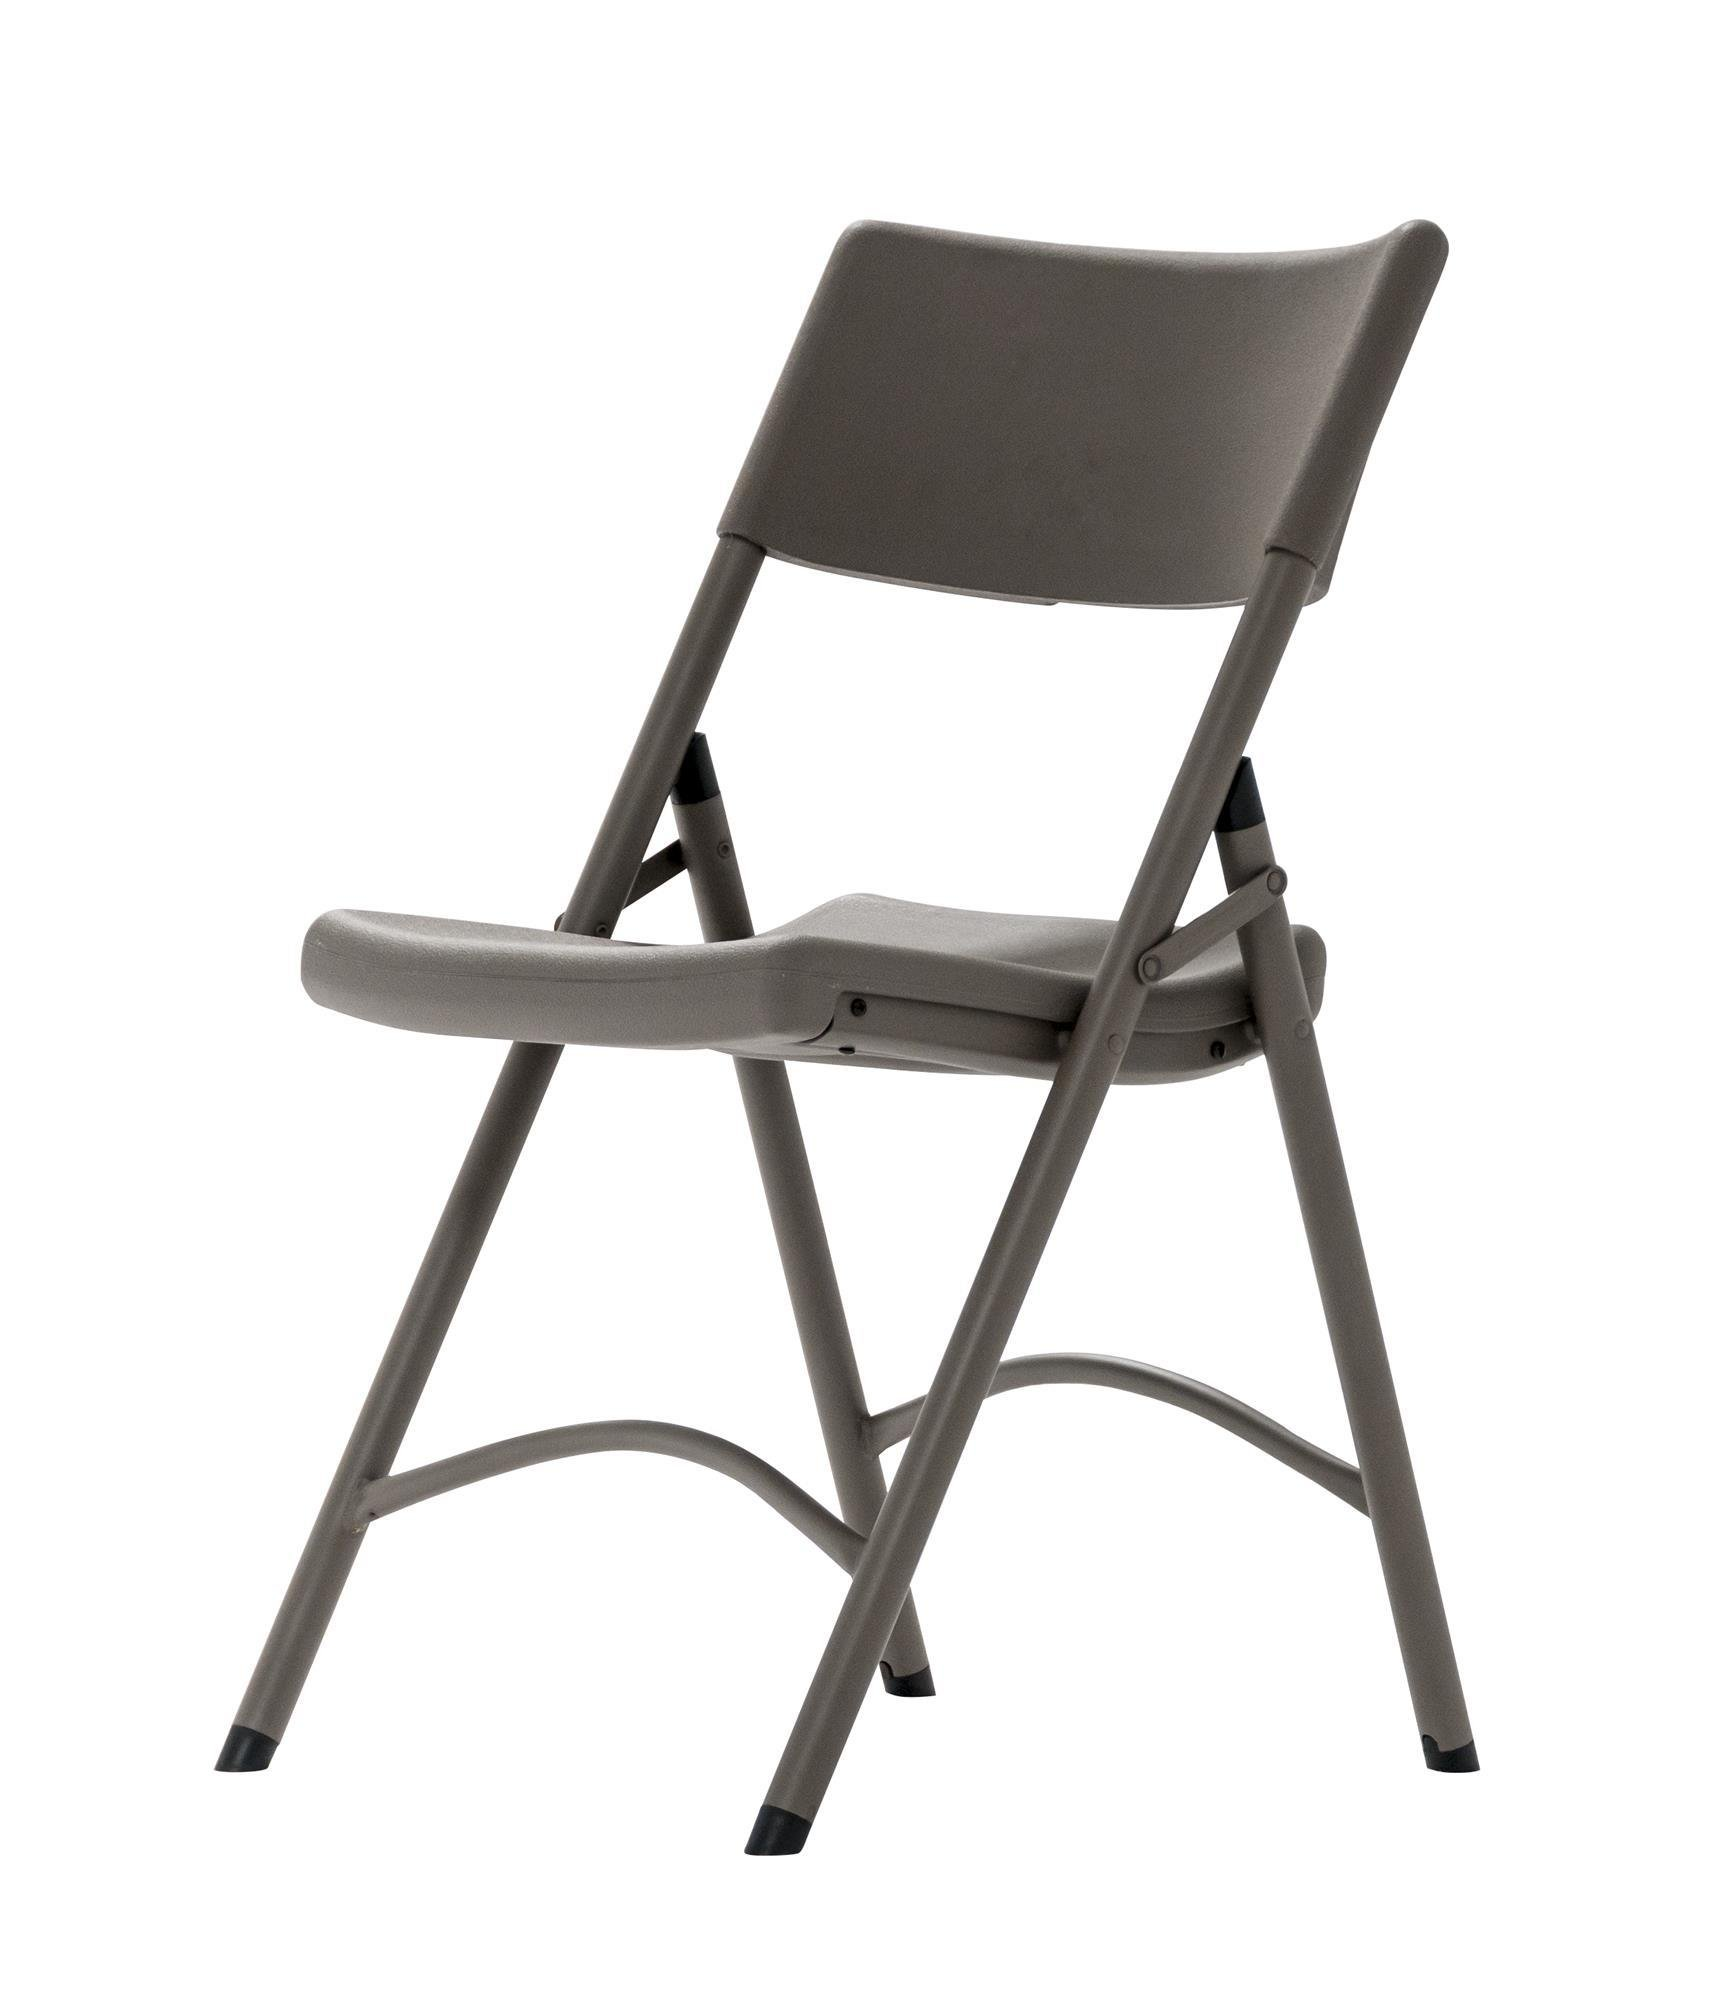 ZOWN Premium Commercial Blow Mold Banquet Folding Chair, Brown, 4 Pack by Cosco